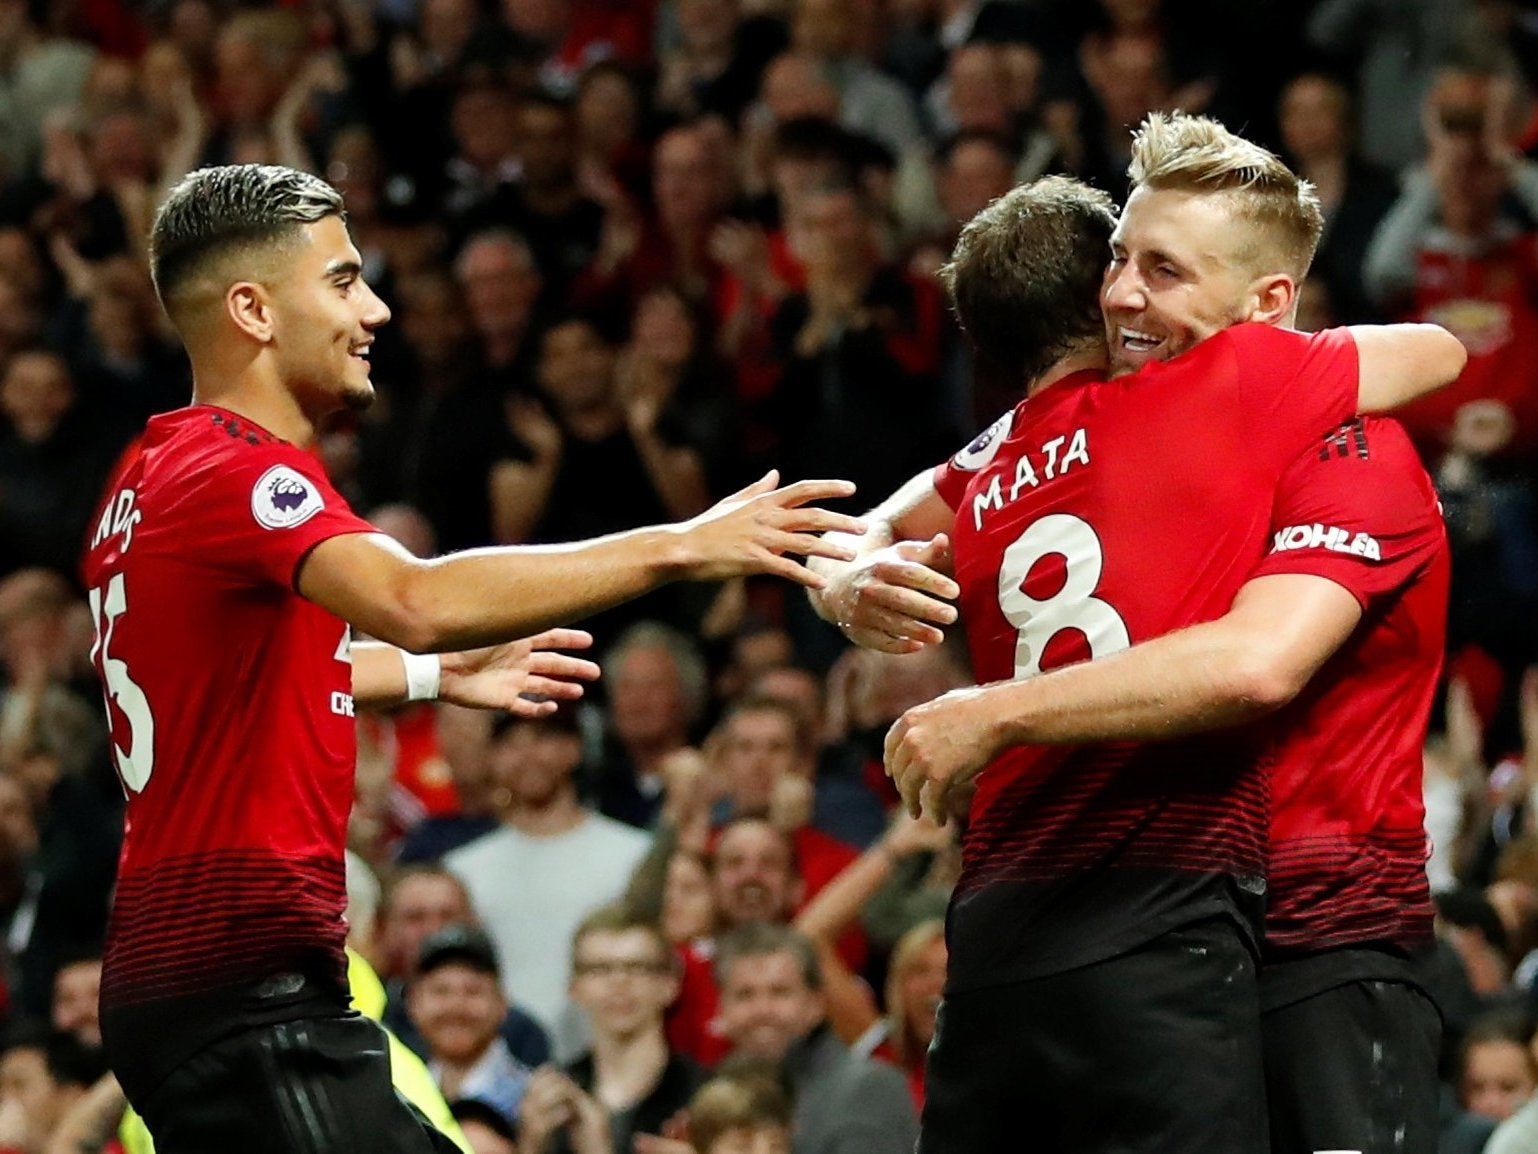 Luke Shaw scores first professional goal as Manchester United begin season with edgy win over Leicester